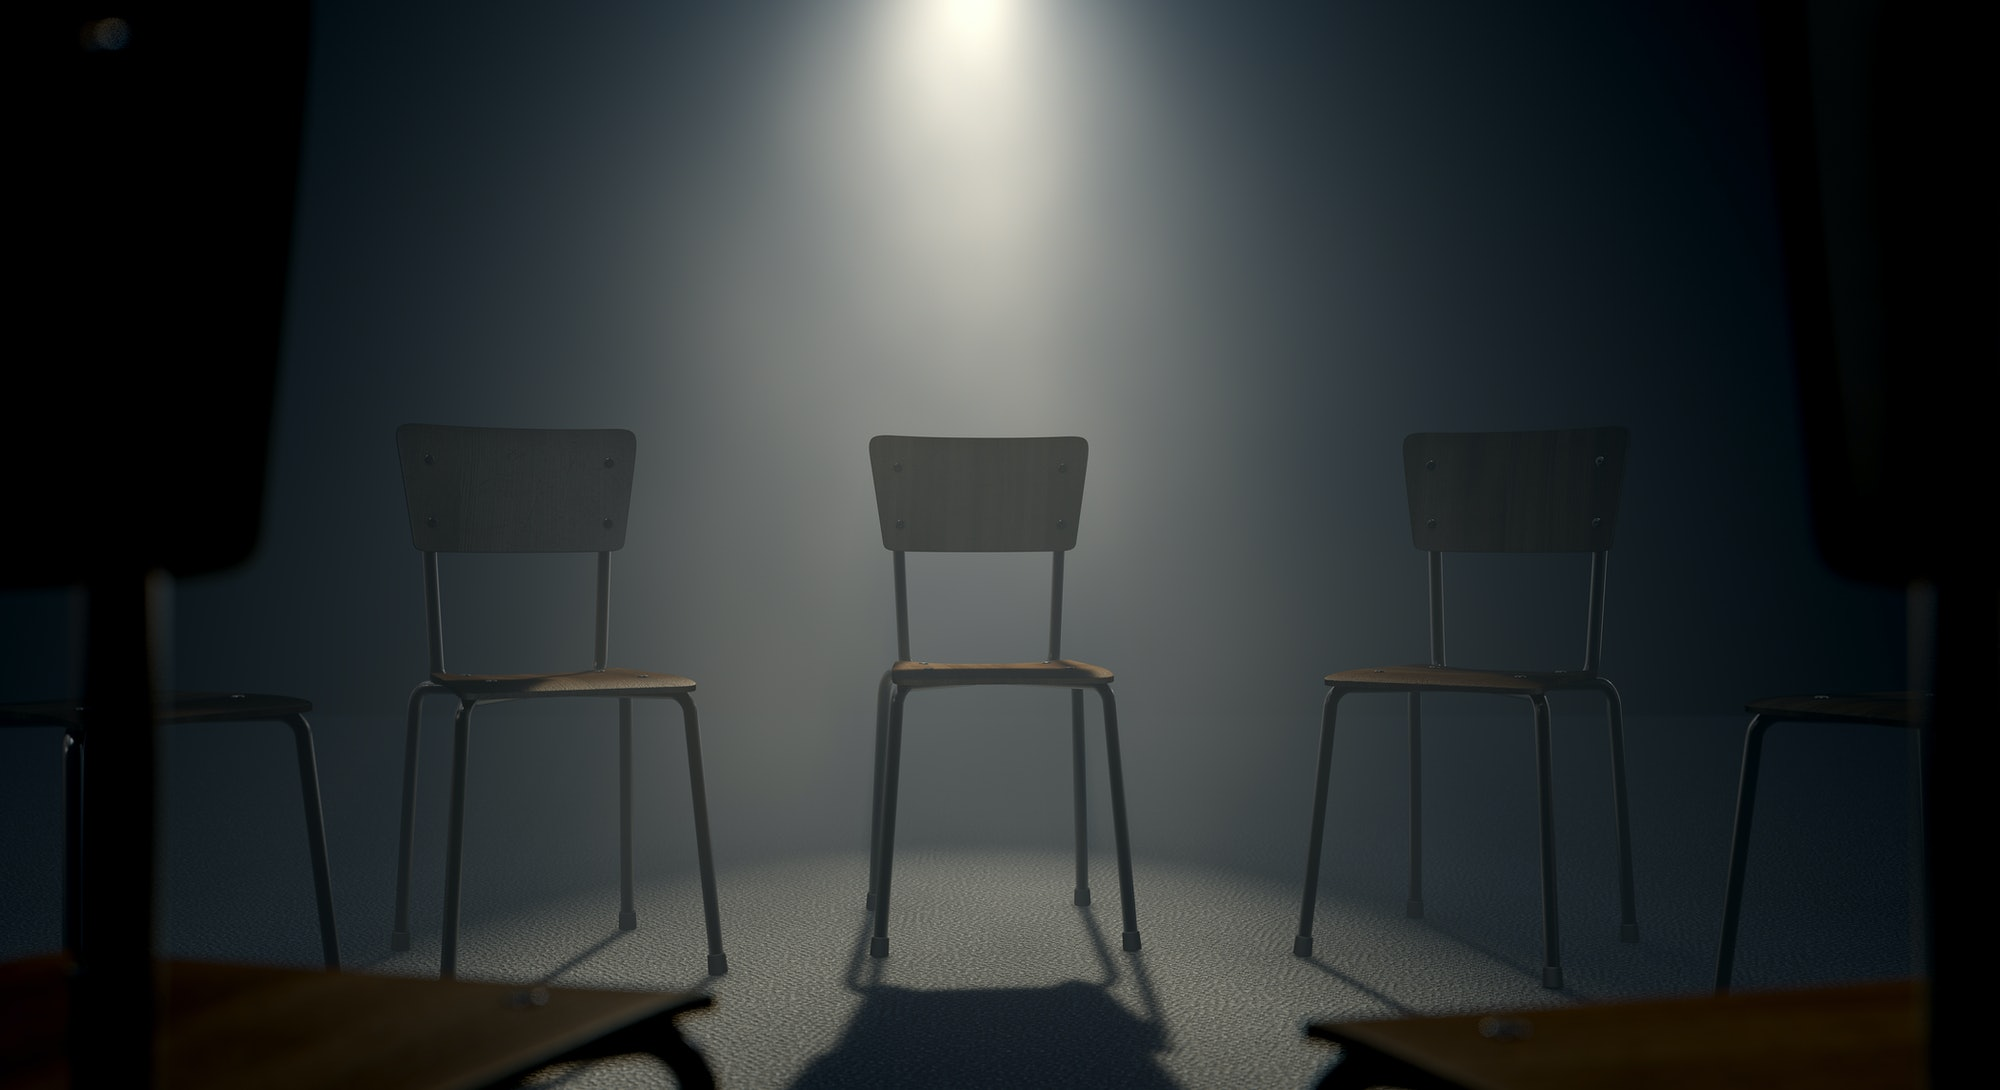 A 3D render concept of a group of chairs in a circular formation with one chair highlighted by a single moody spotlight on a dark background